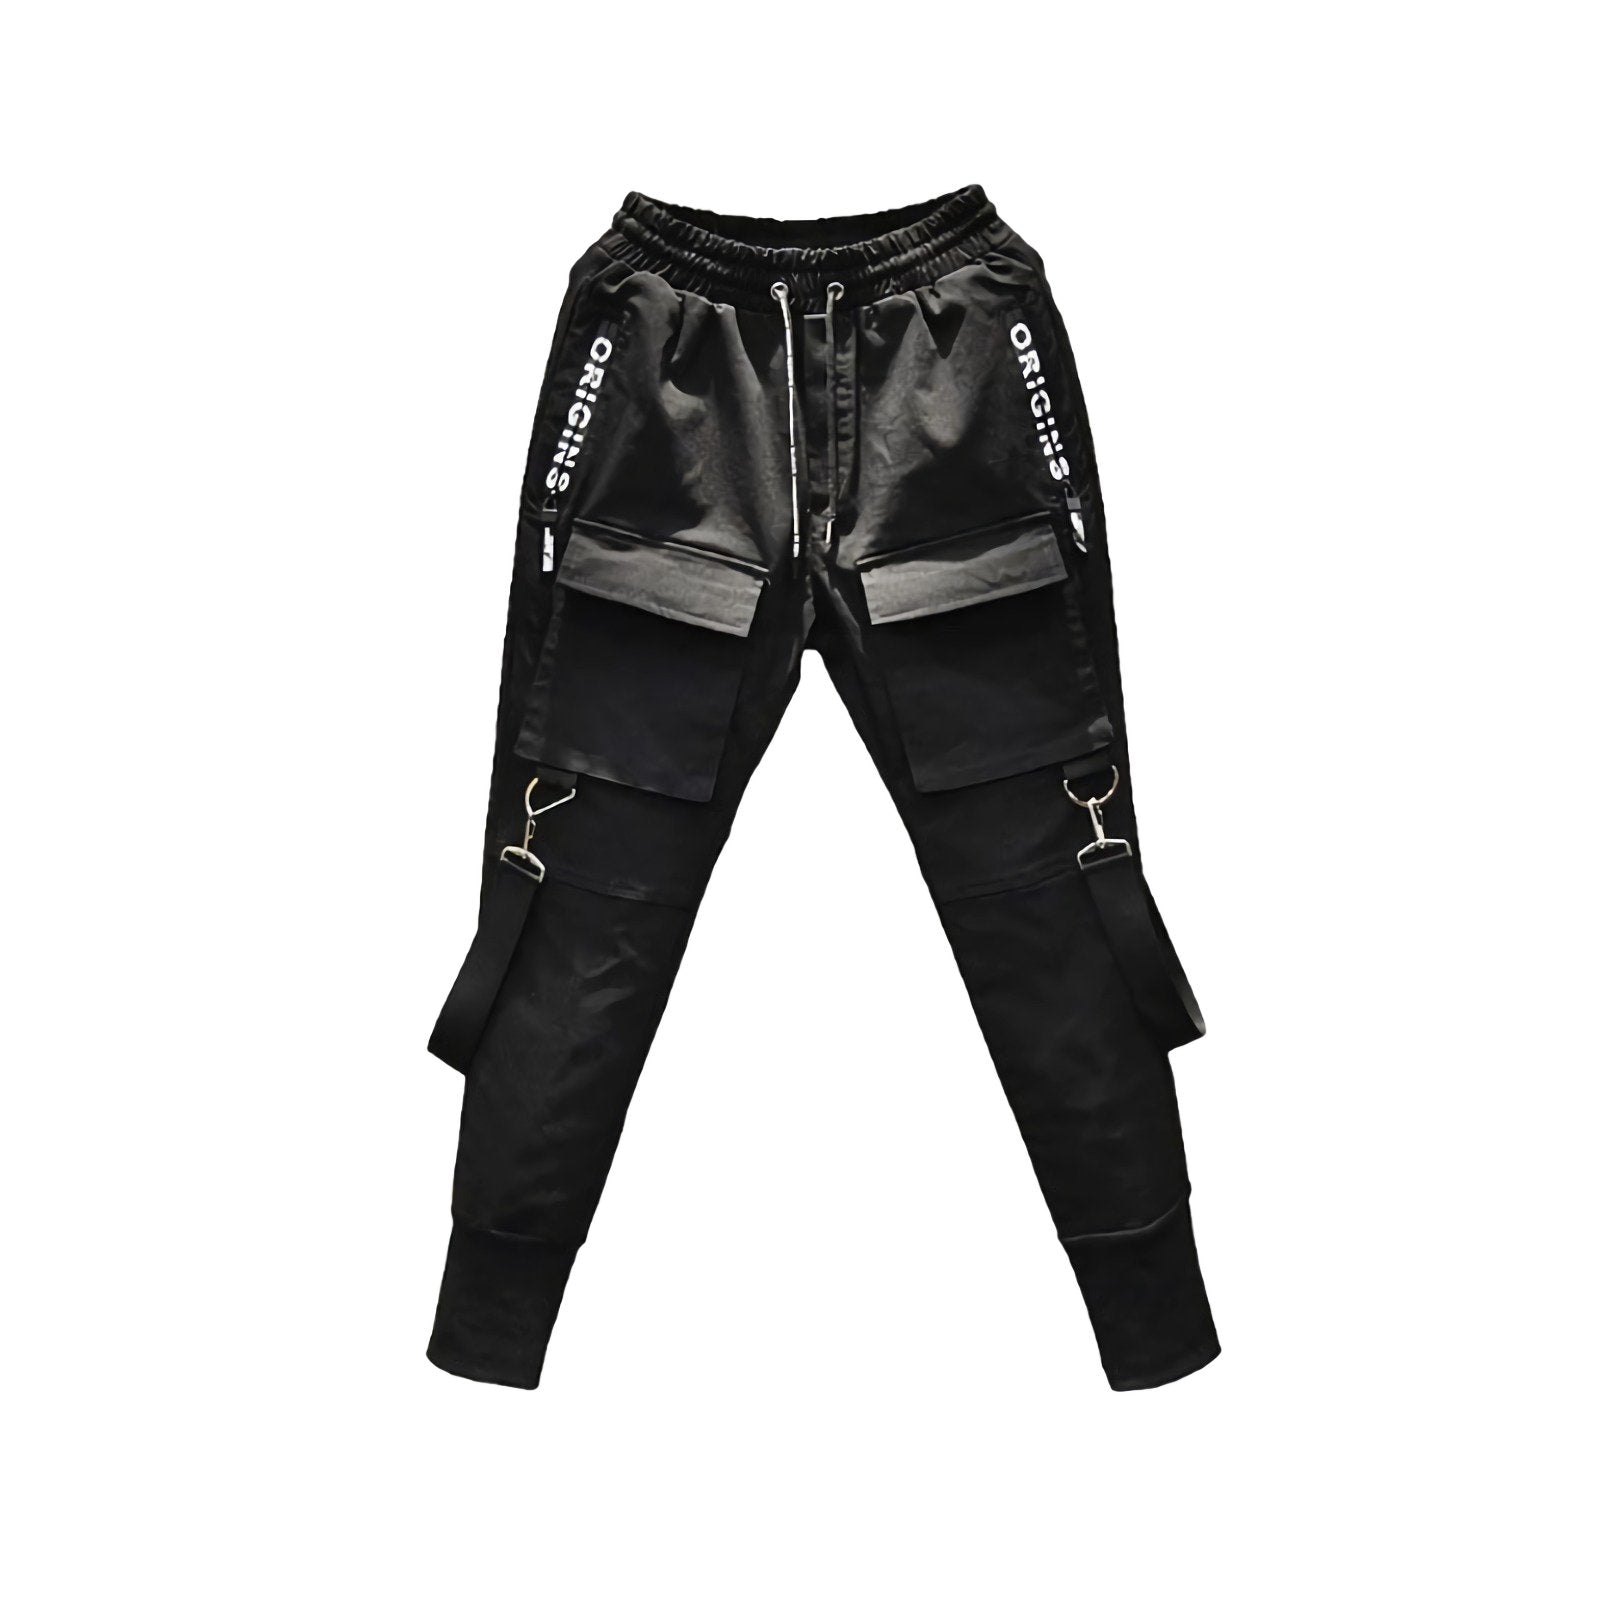 Rock Style Pencil Pants With Side Pockets / Rave Outfits & Punk Clothing